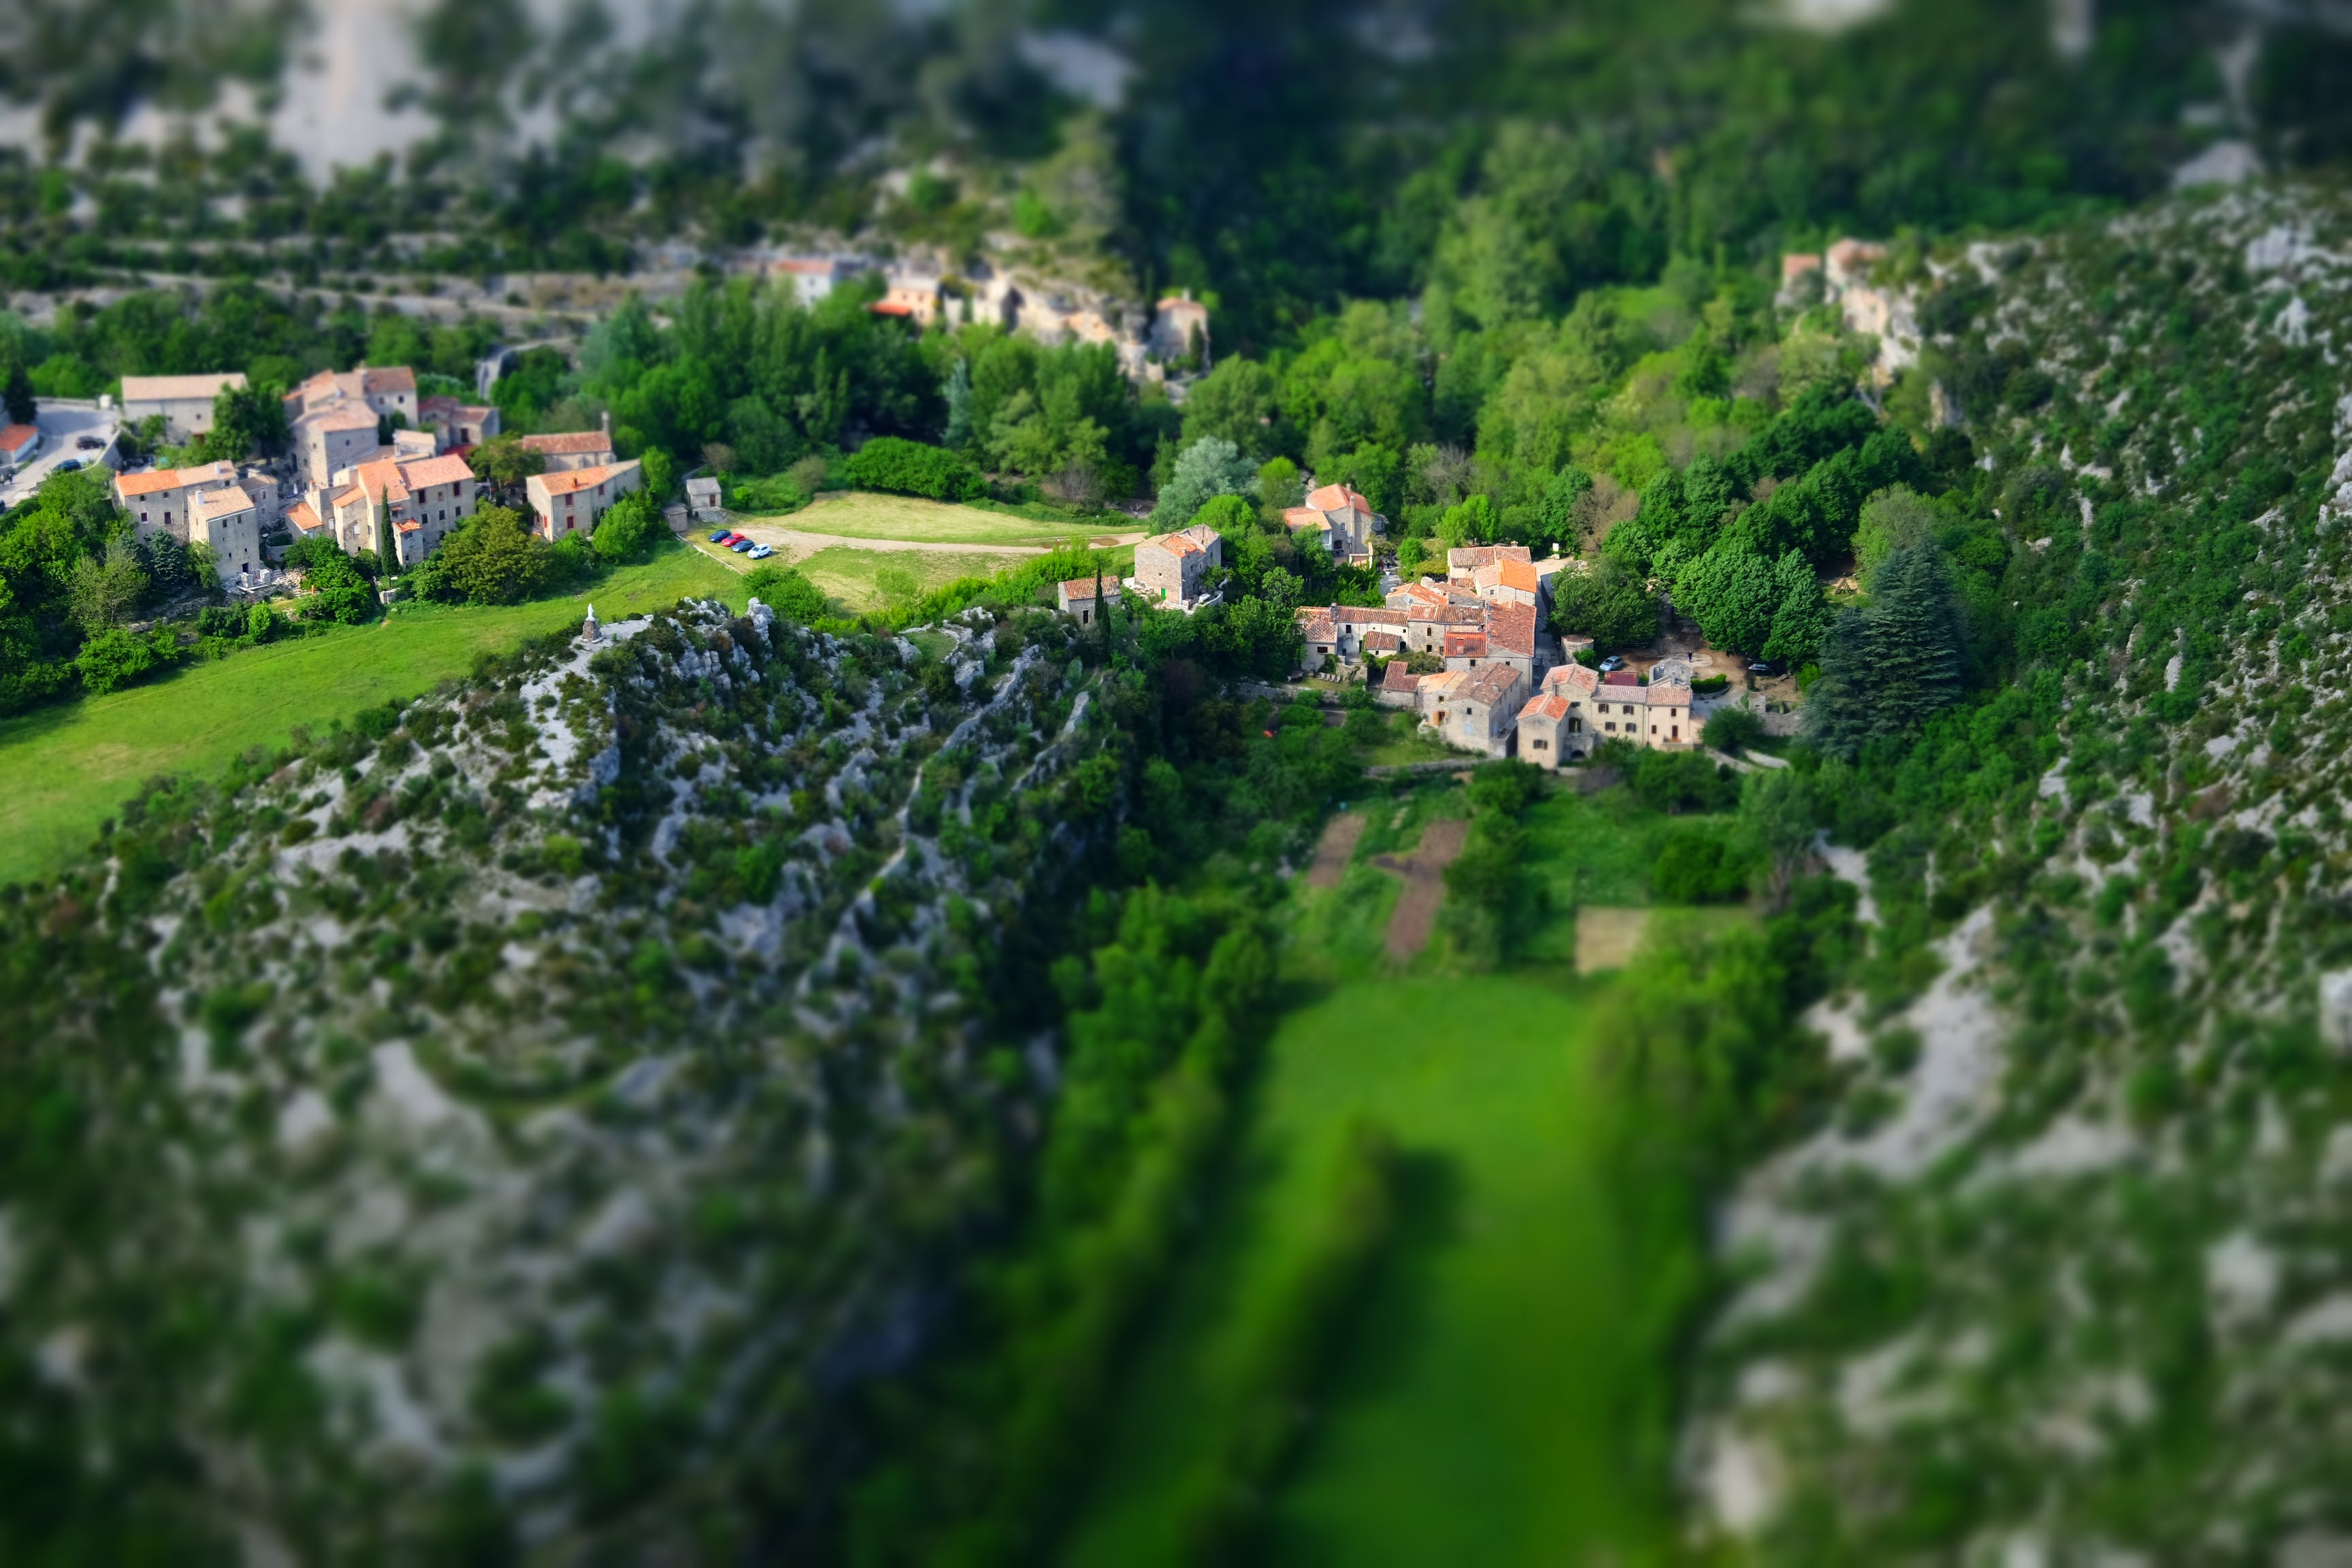 Wide Angle Photography of Houses Surrounded With Trees